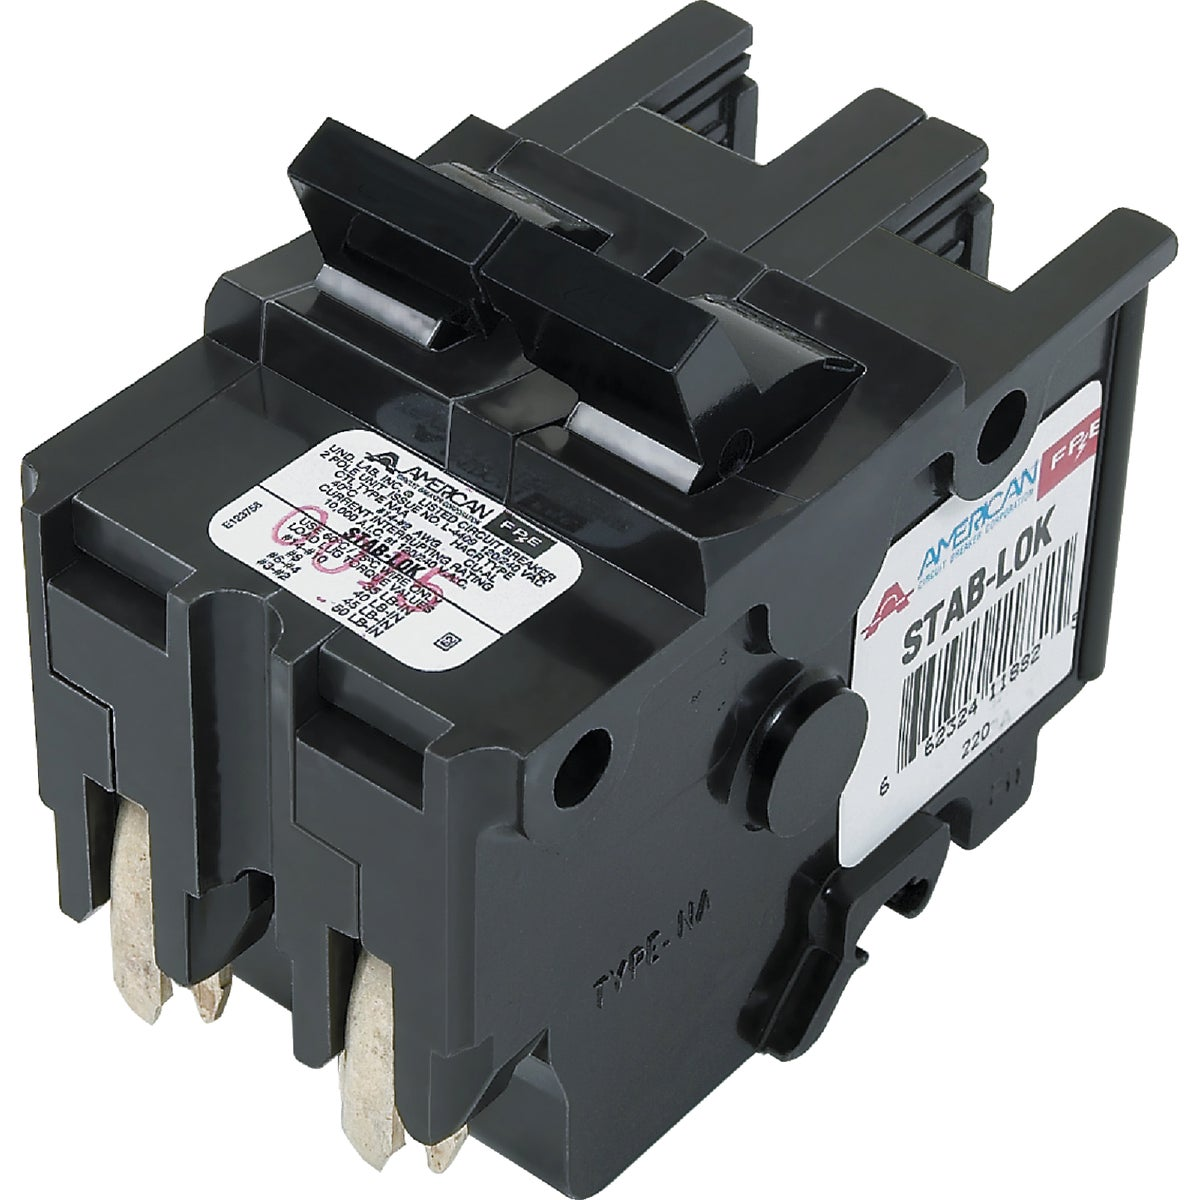 40A 2P CIRCUIT BREAKER - UBIF240N by Connecticut Electric